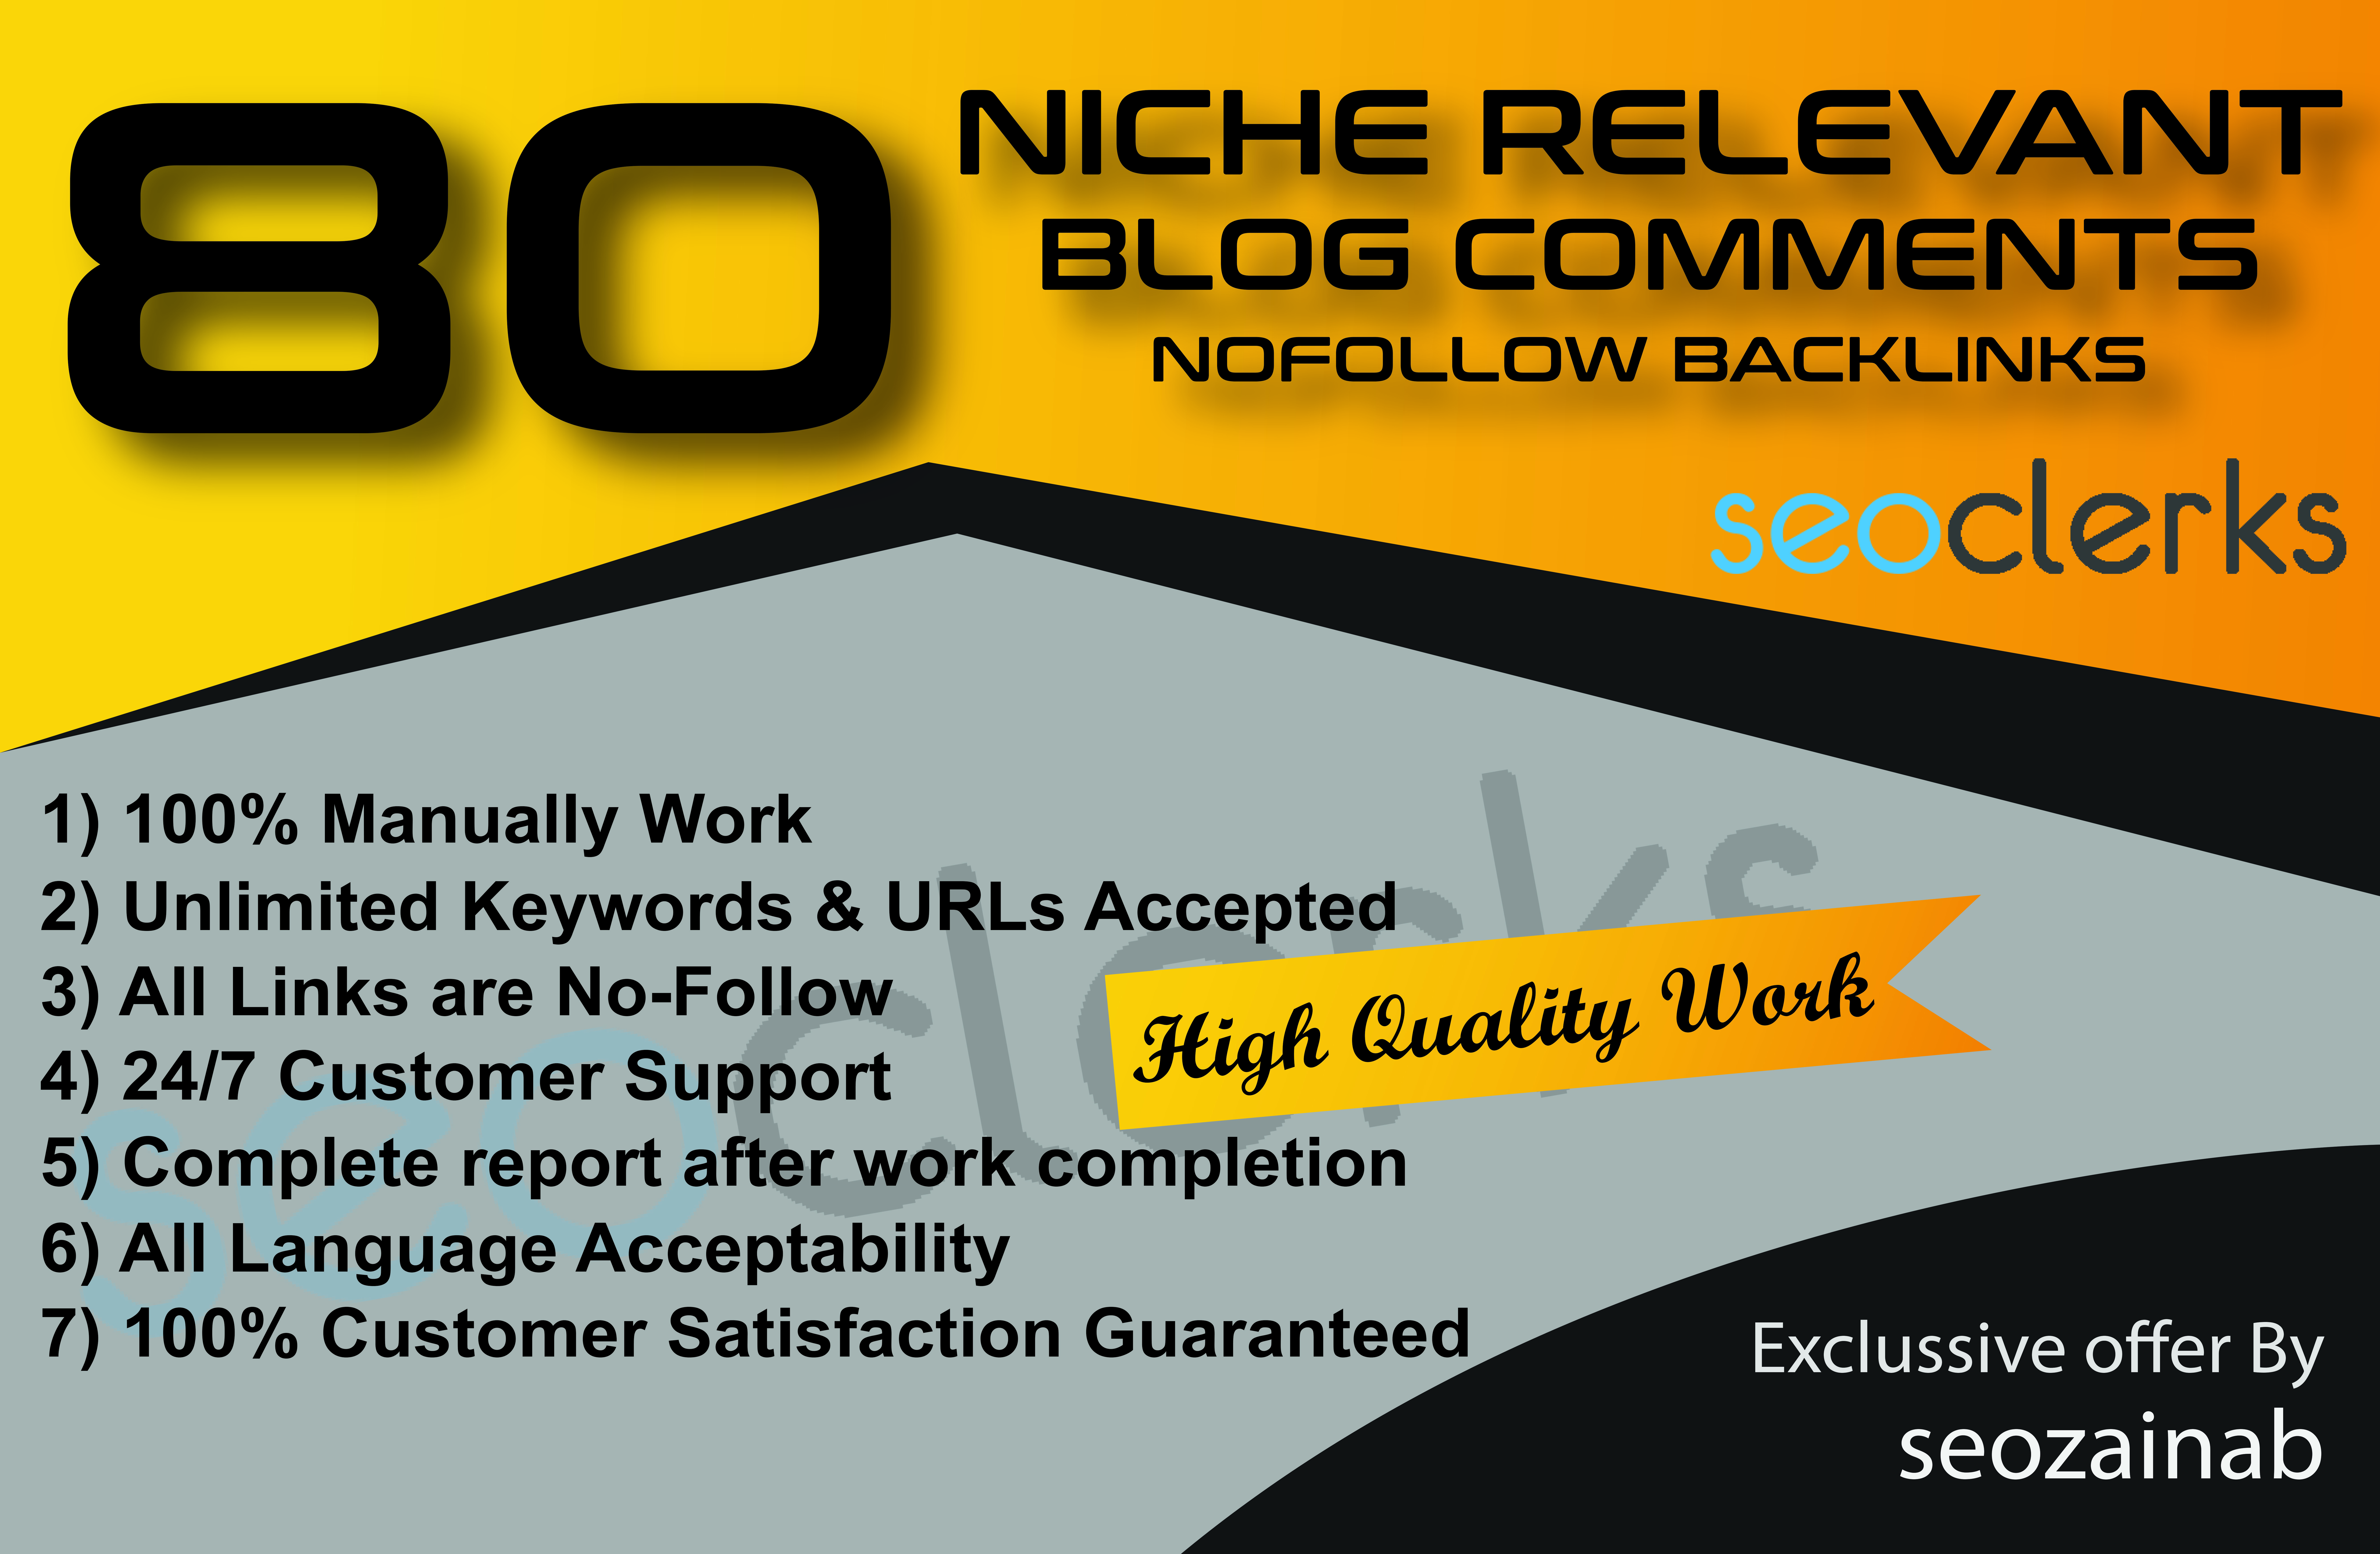 I Will Provide 80 Niche Relevant Blog Comments High Quality Backlinks